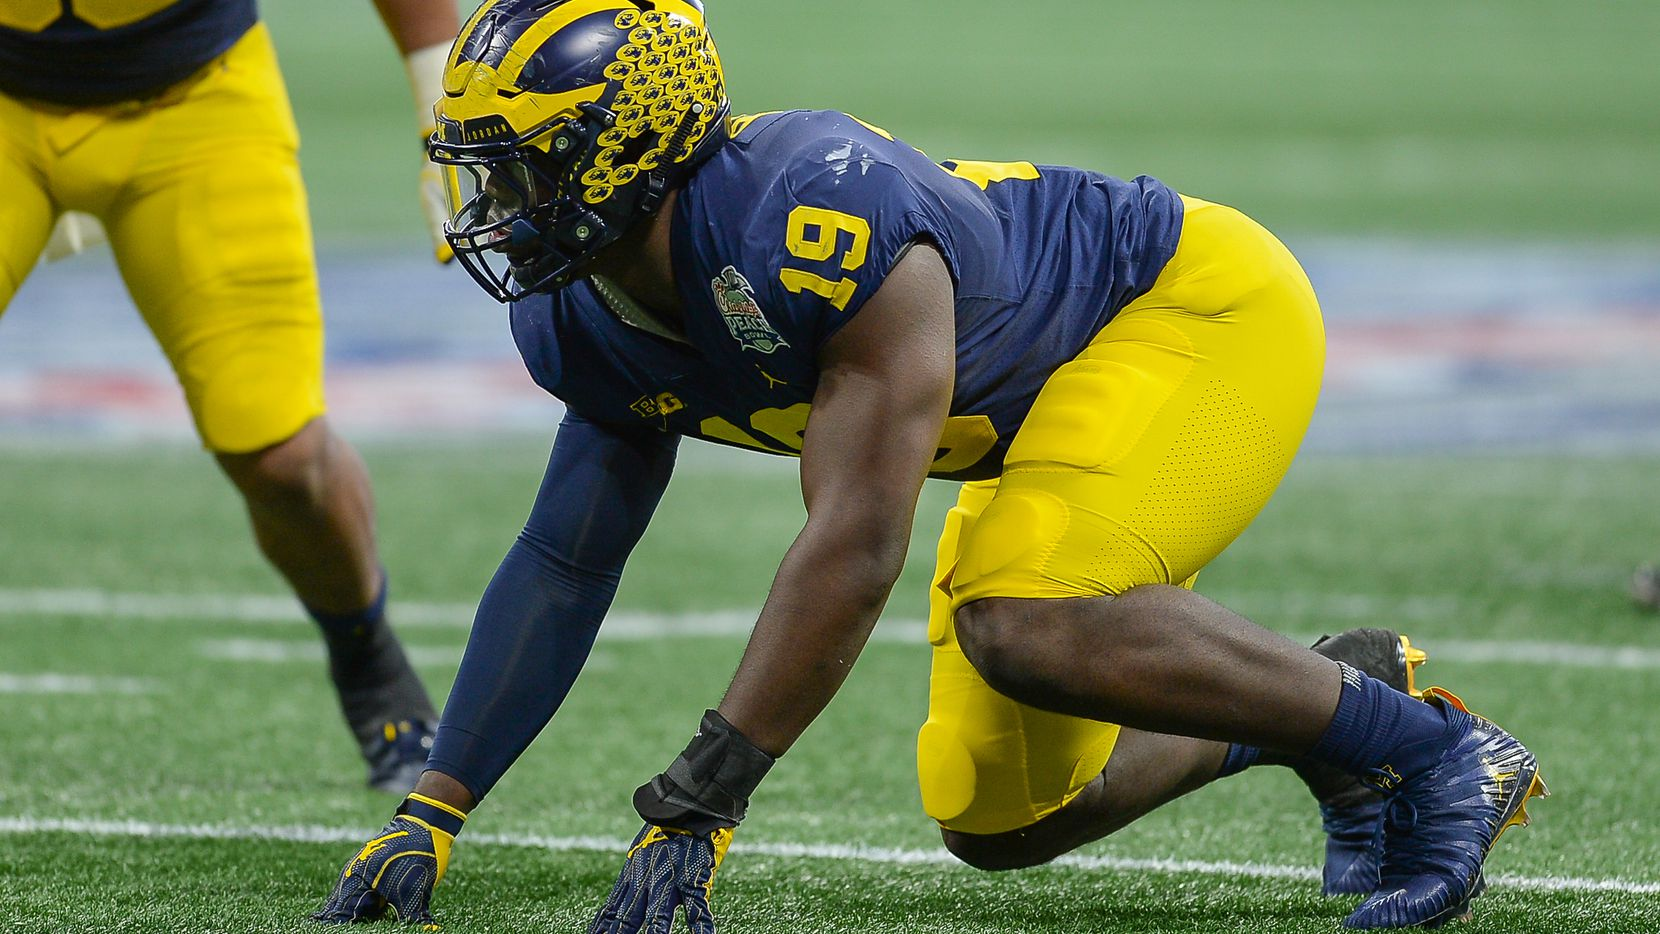 Michigan defensive end Kwity Paye (19) prepares to rush the quarterback during the Peach Bowl against Florida on Dec. 29, 2018, at Mercedes-Benz Stadium in Atlanta. (Photo by Rich von Biberstein/Icon Sportswire via Getty Images)